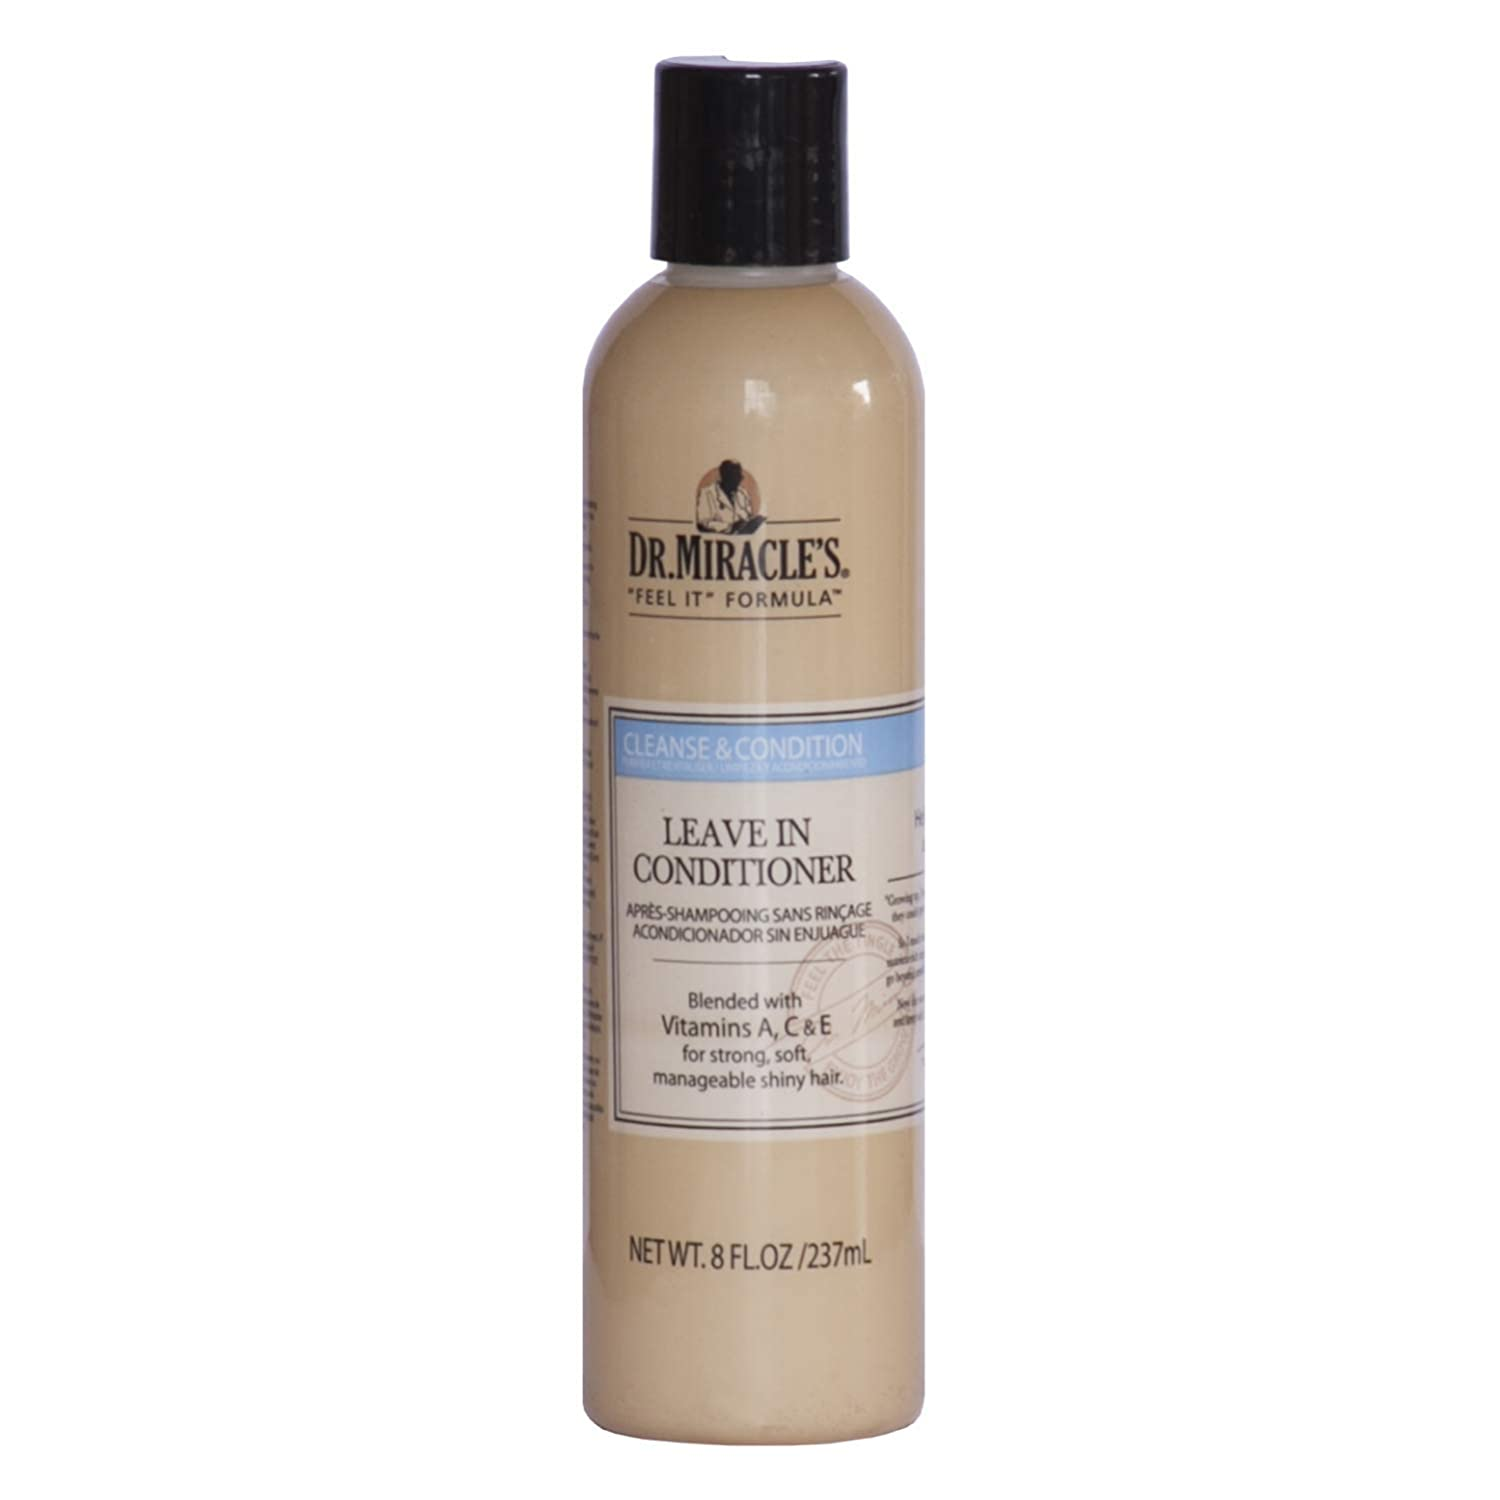 Dr. Miracle's Leave In Conditioner, Blended with Vitamins A, C & E for Strong, Soft, Manageable Shiny Hair, 8 Ounce